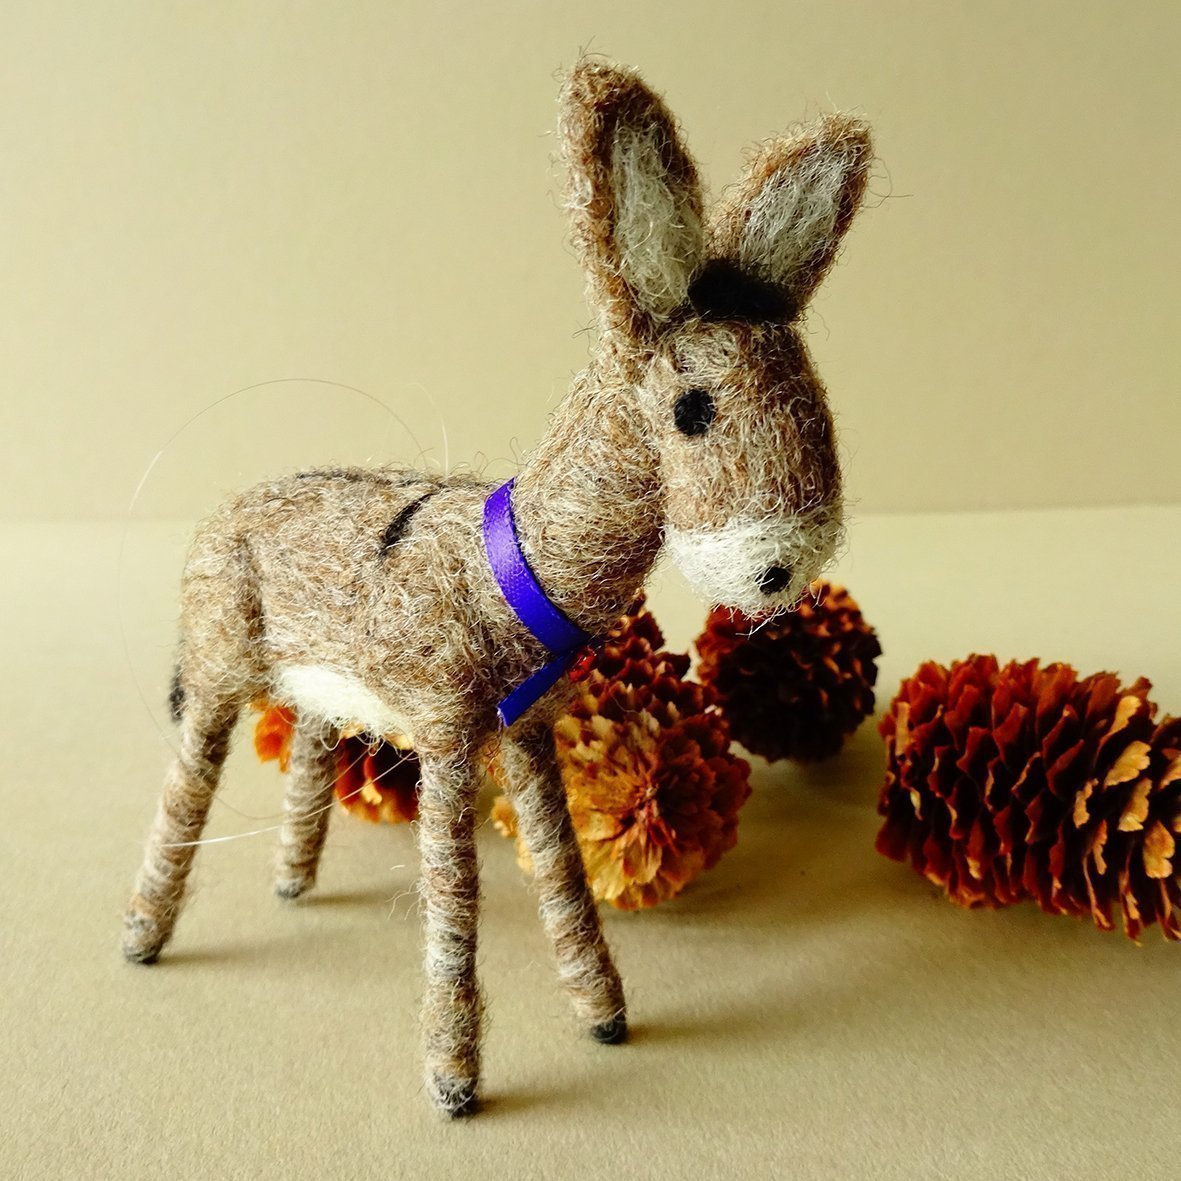 Handmade donkey ornament   Rustic farmhouse decoration   Needle felted animal lover gifts   Farm animals housewarming gift for couple   Traditional countryside decor   3'' inches by 3''   Kraft gift box